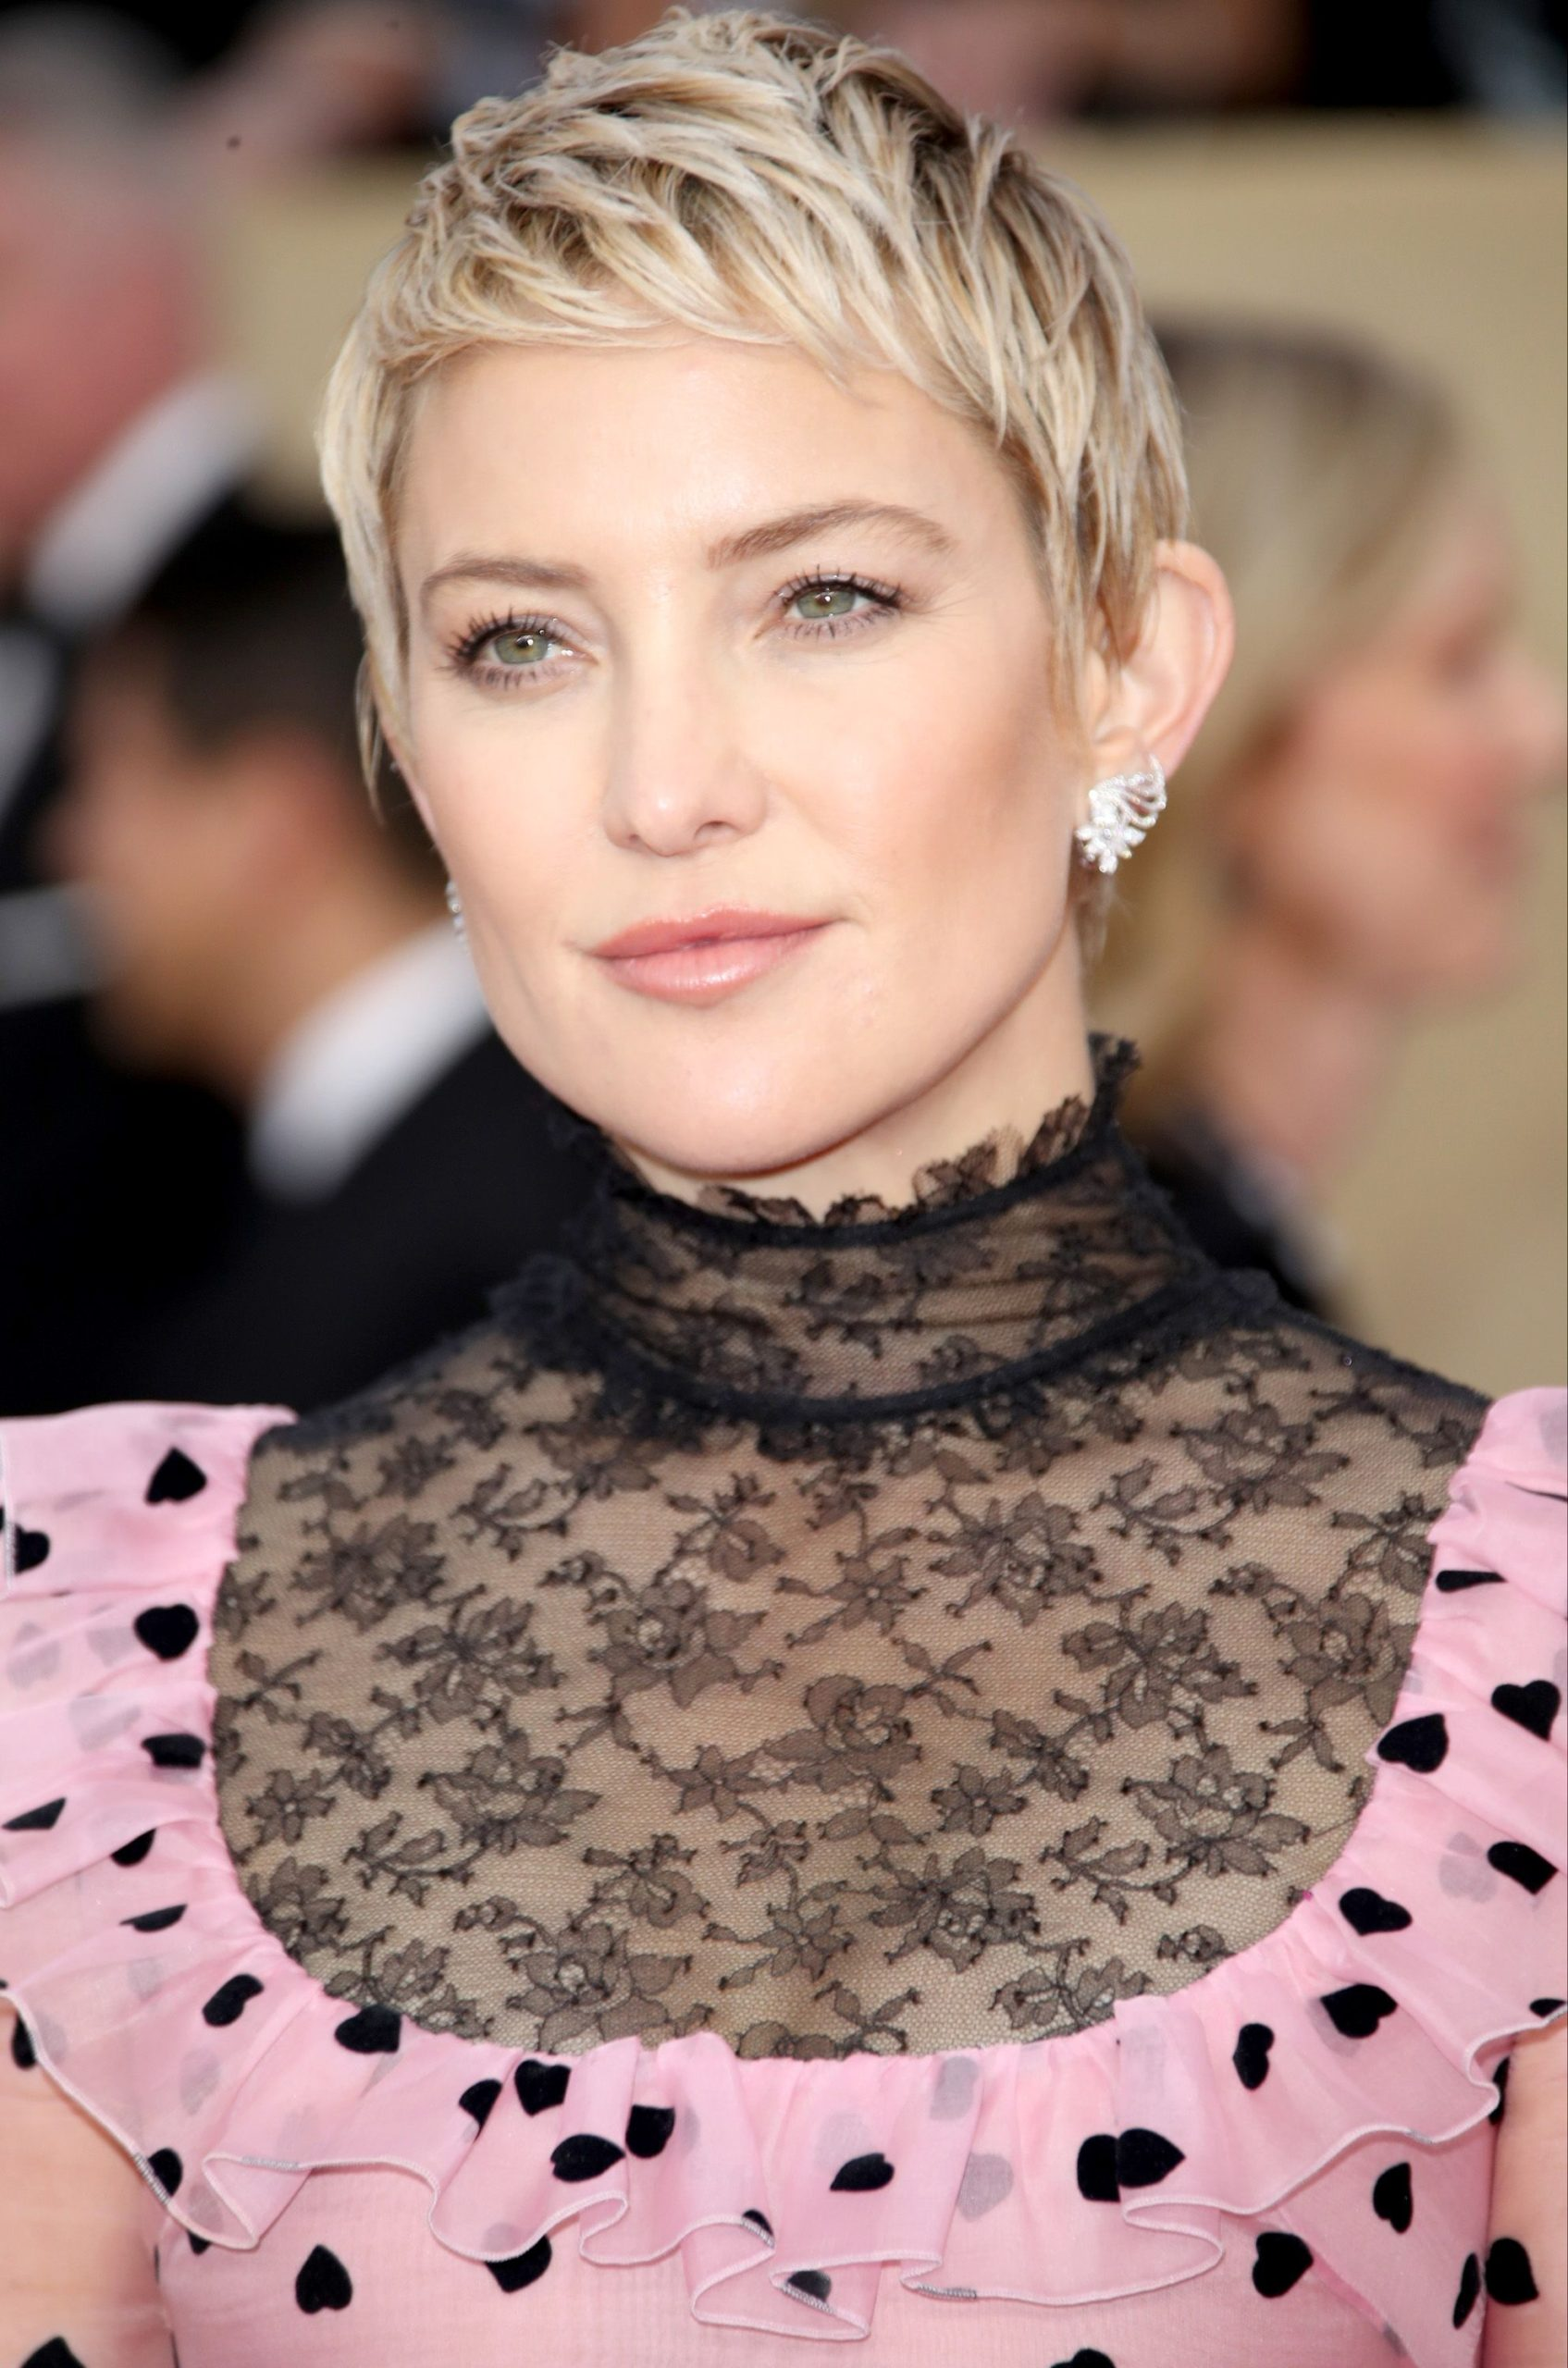 Bold-pixie-cuts.-scaled 70+ Outdated Hairstyle Ideas Coming Back in 2021